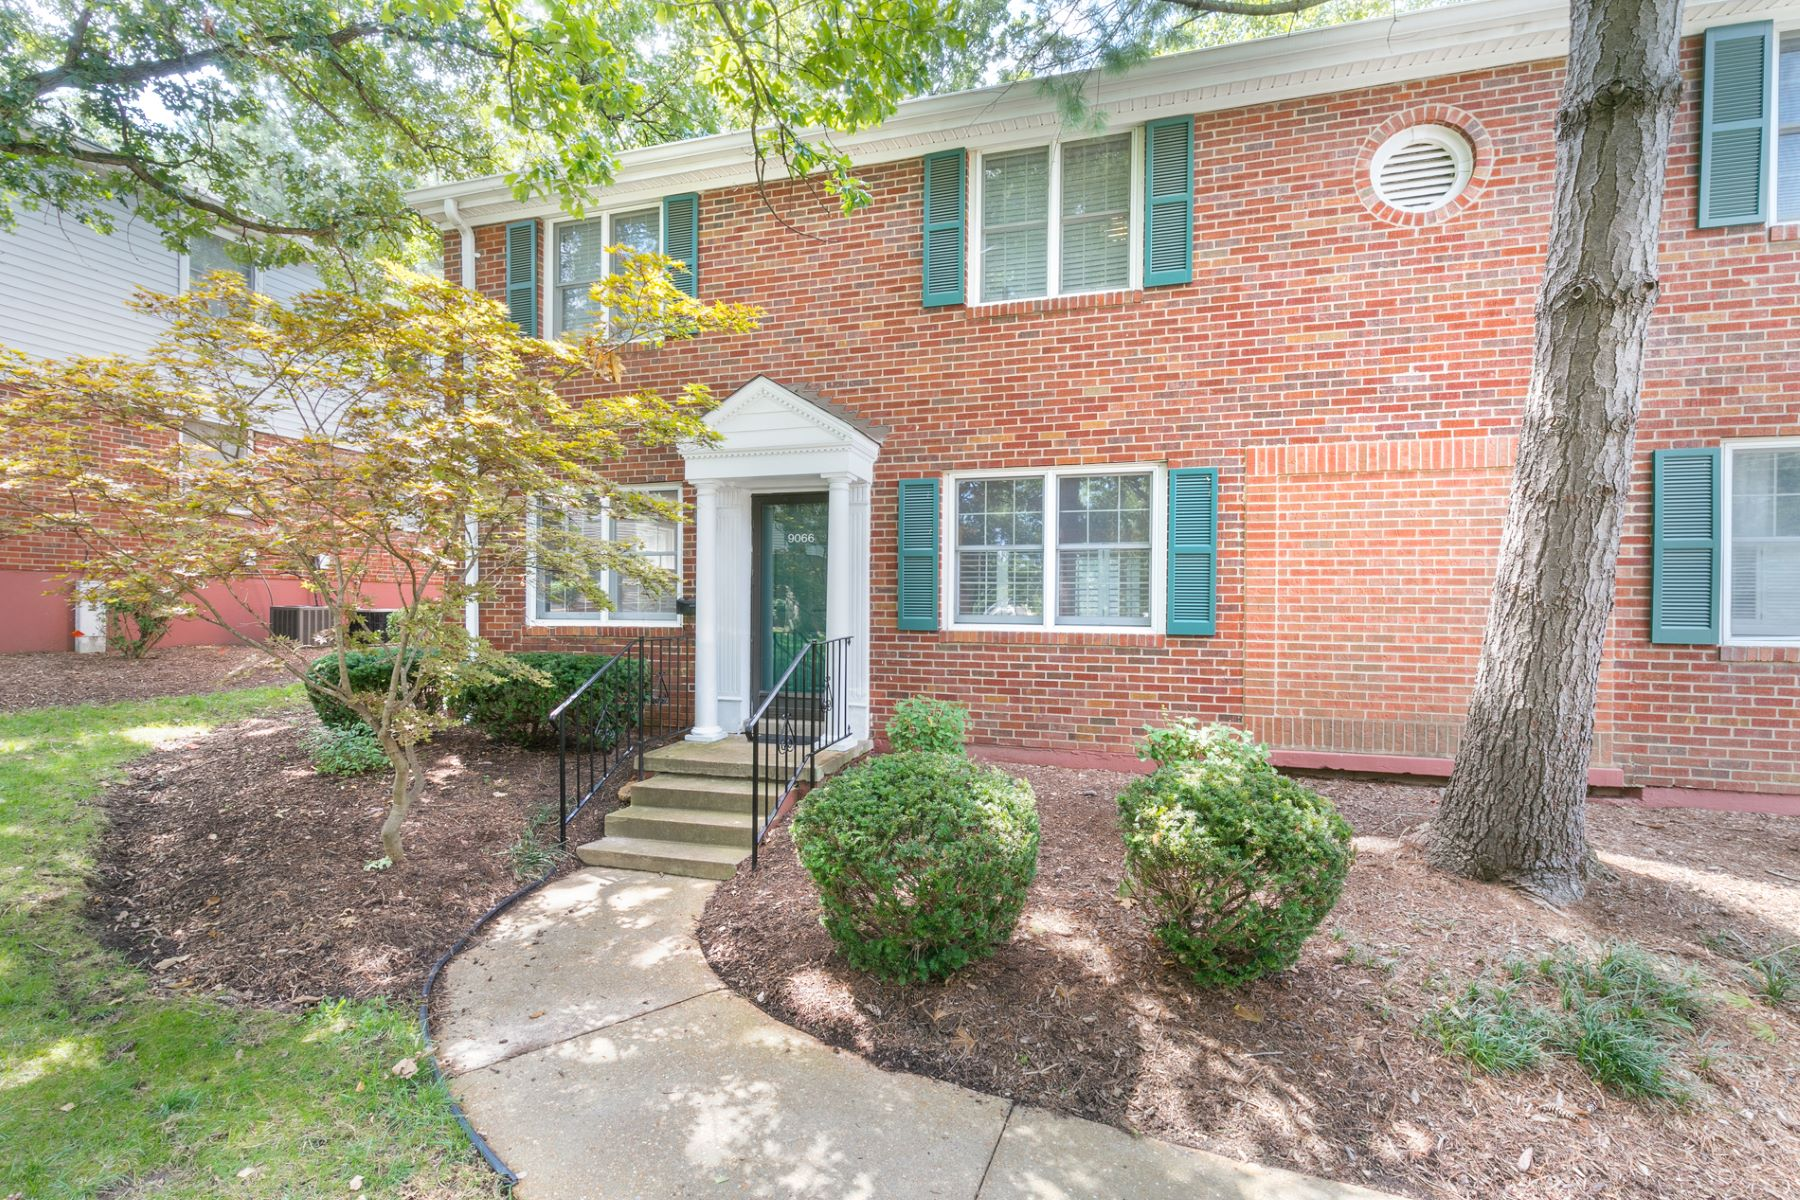 Condominium for Sale at West Swan Circle 9066 West Swan Circle Brentwood, Missouri 63144 United States